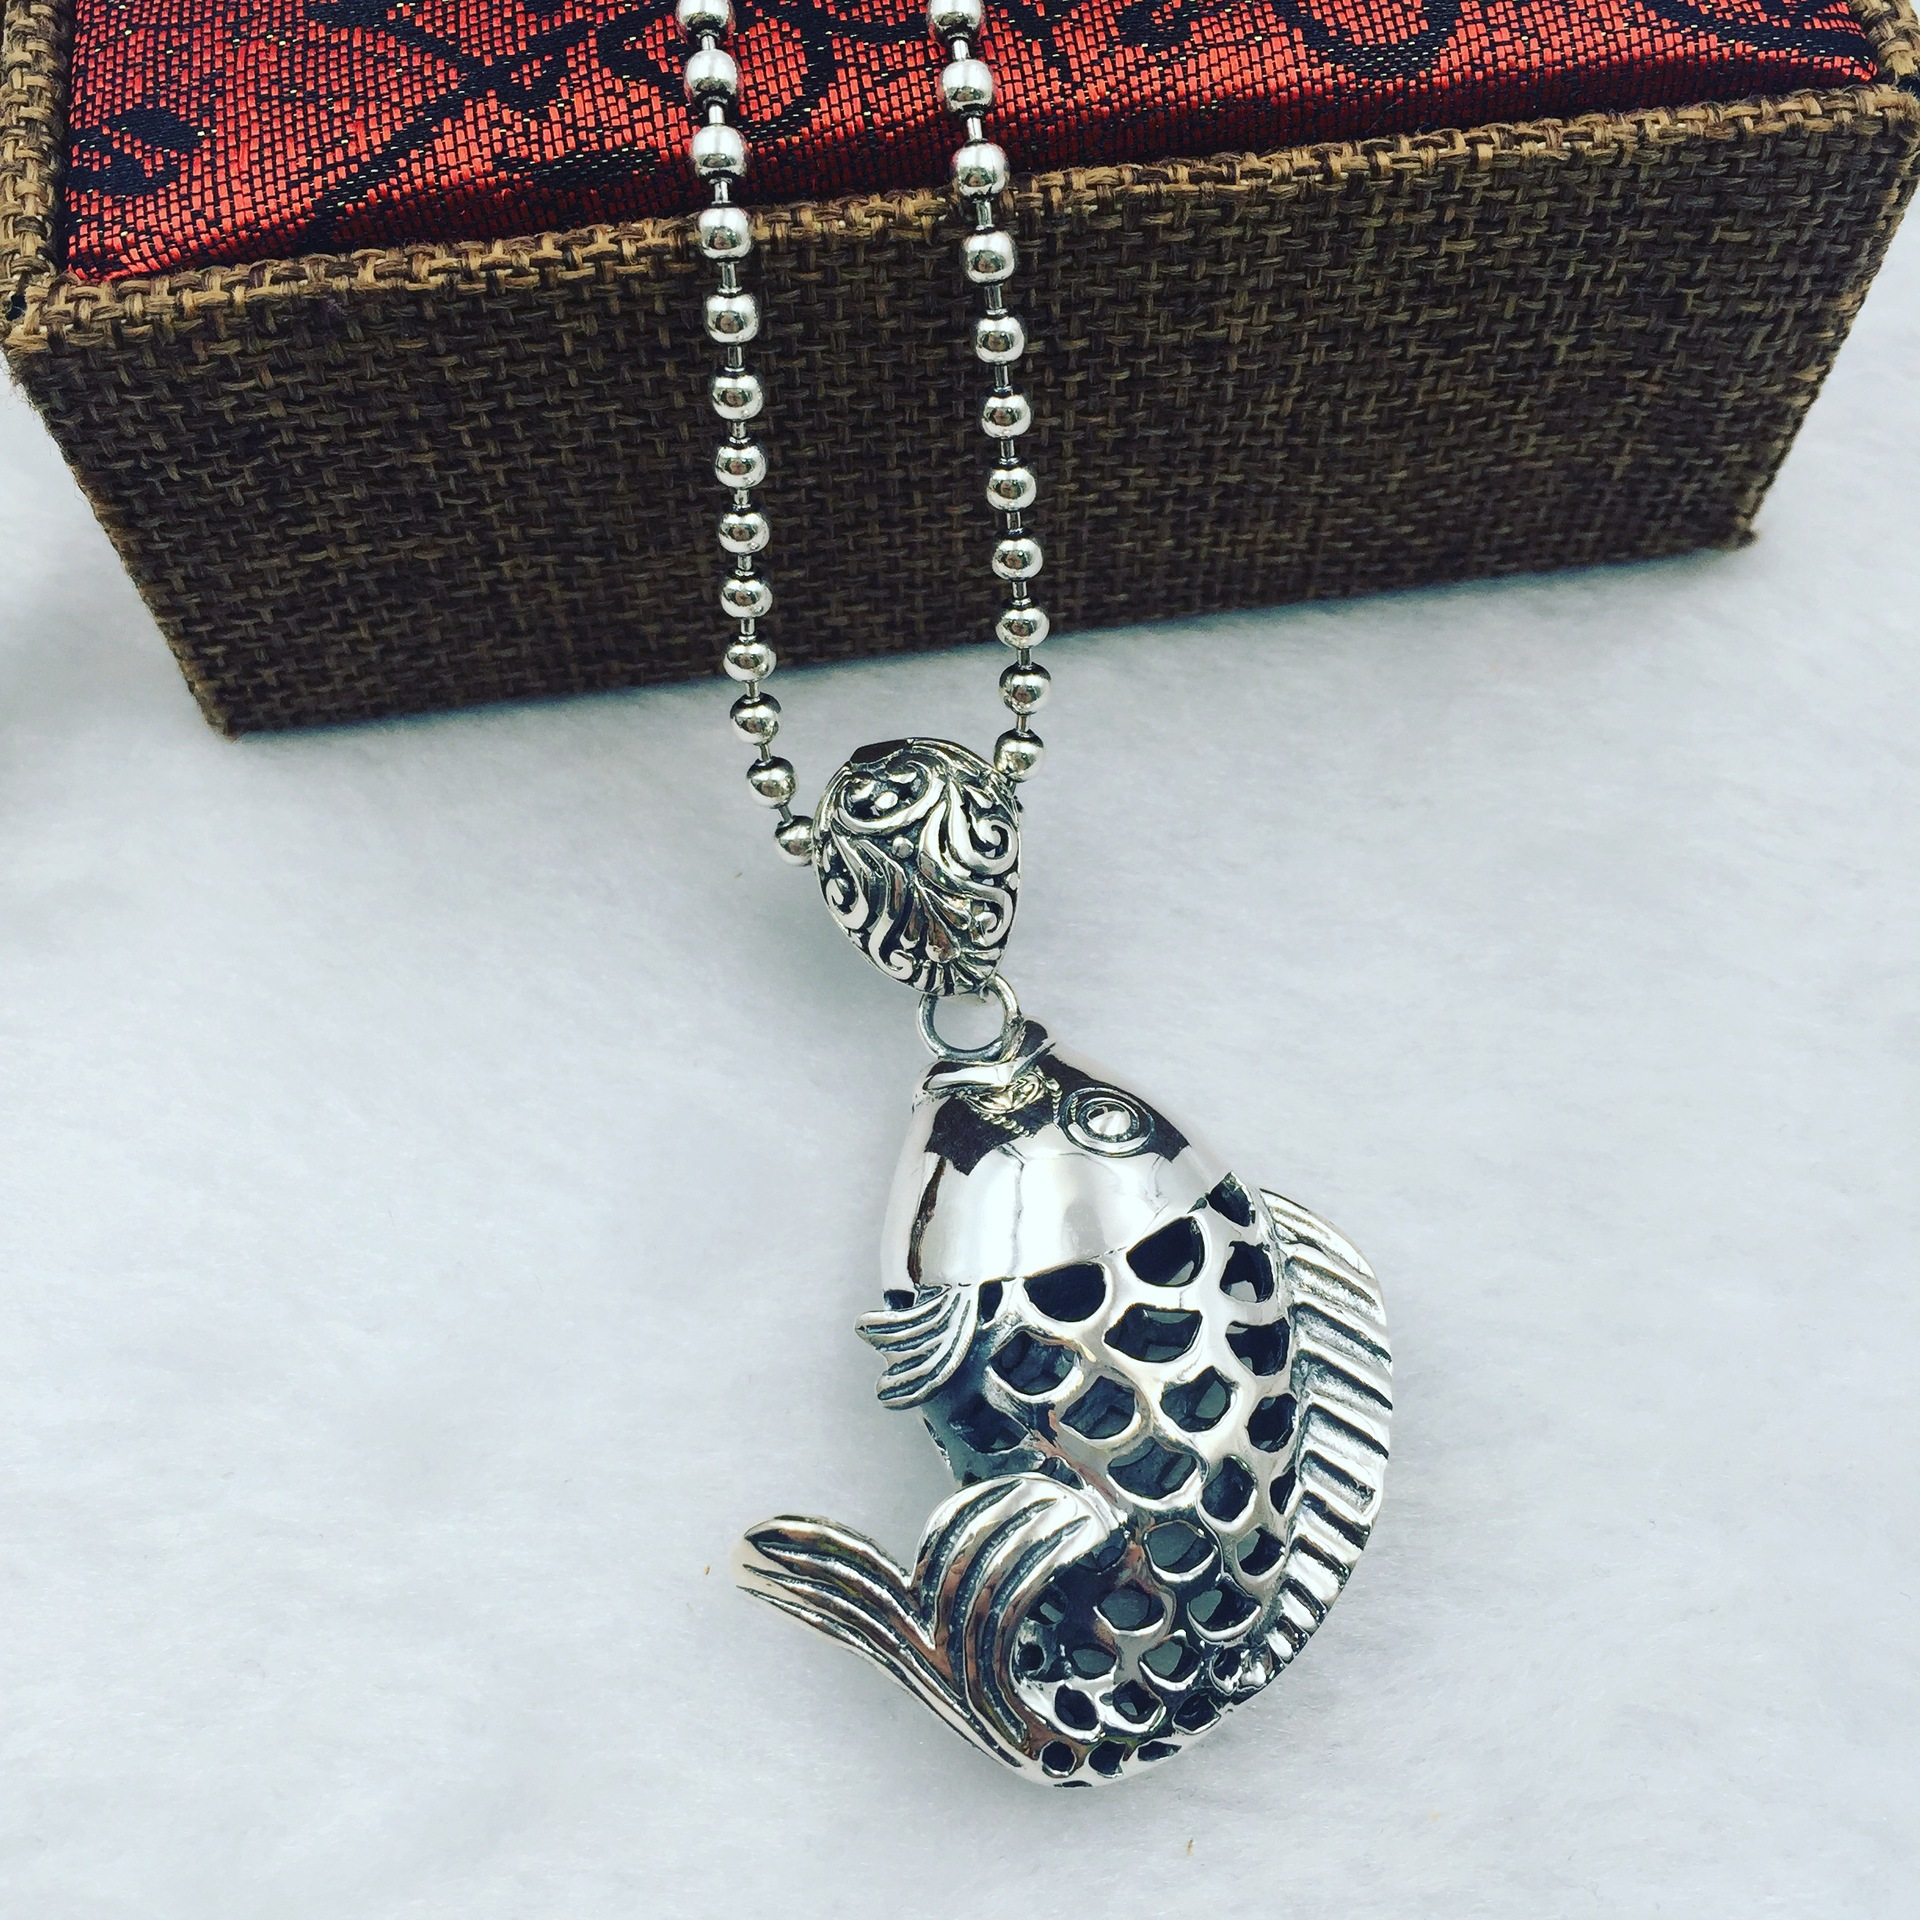 The ancient Thai silver silver carp Koi genuine S925 Solid Silver Pendant Pendant Chain sweater factory direct genuine s925 sterling silver pendant silver abacus activities auspicious clouds sweater chain pendant factory direct